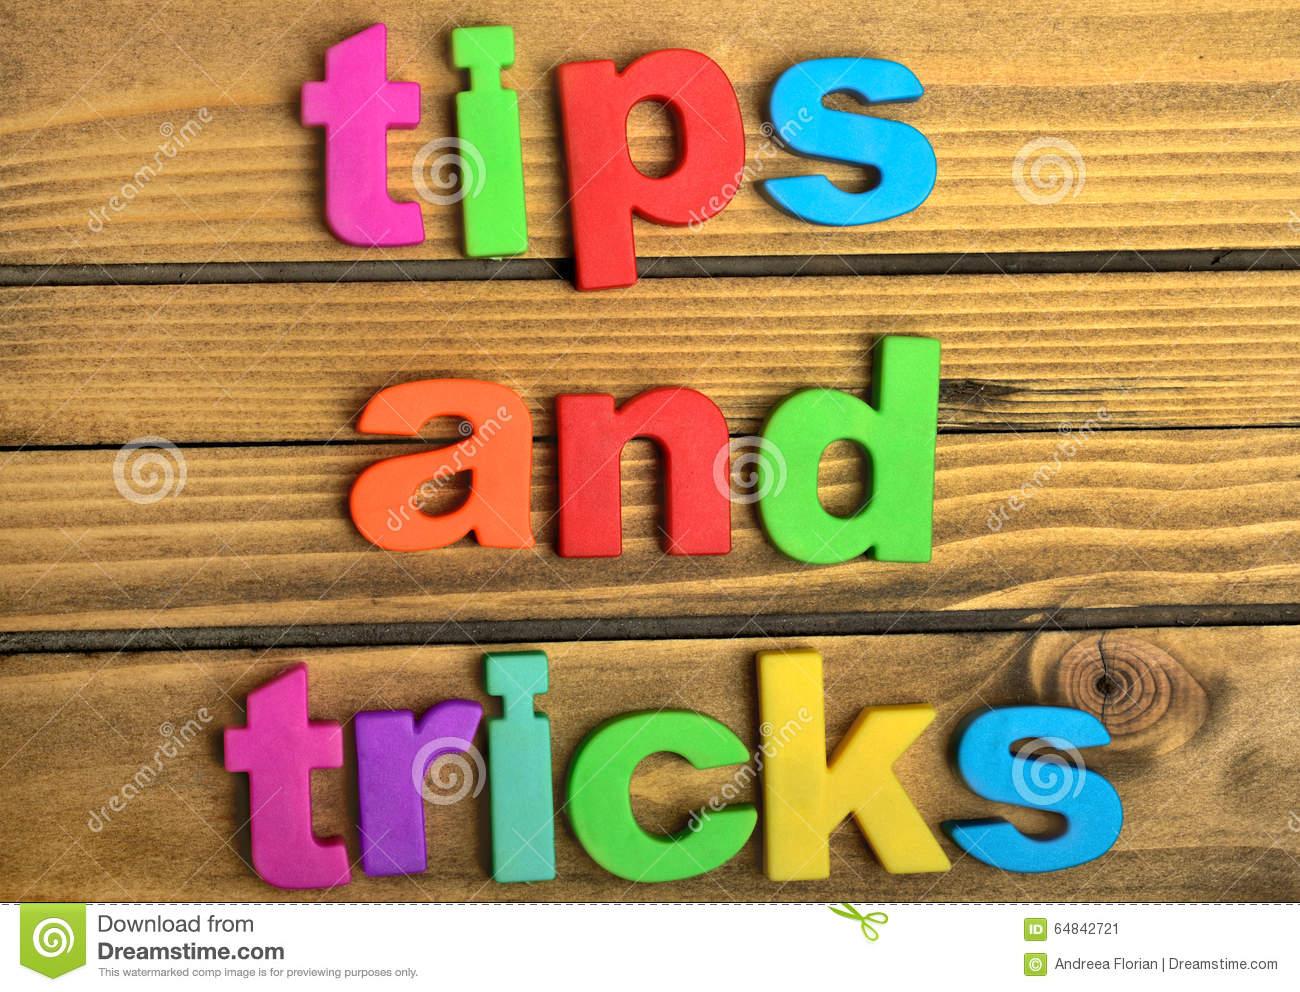 Tips and Tricks word